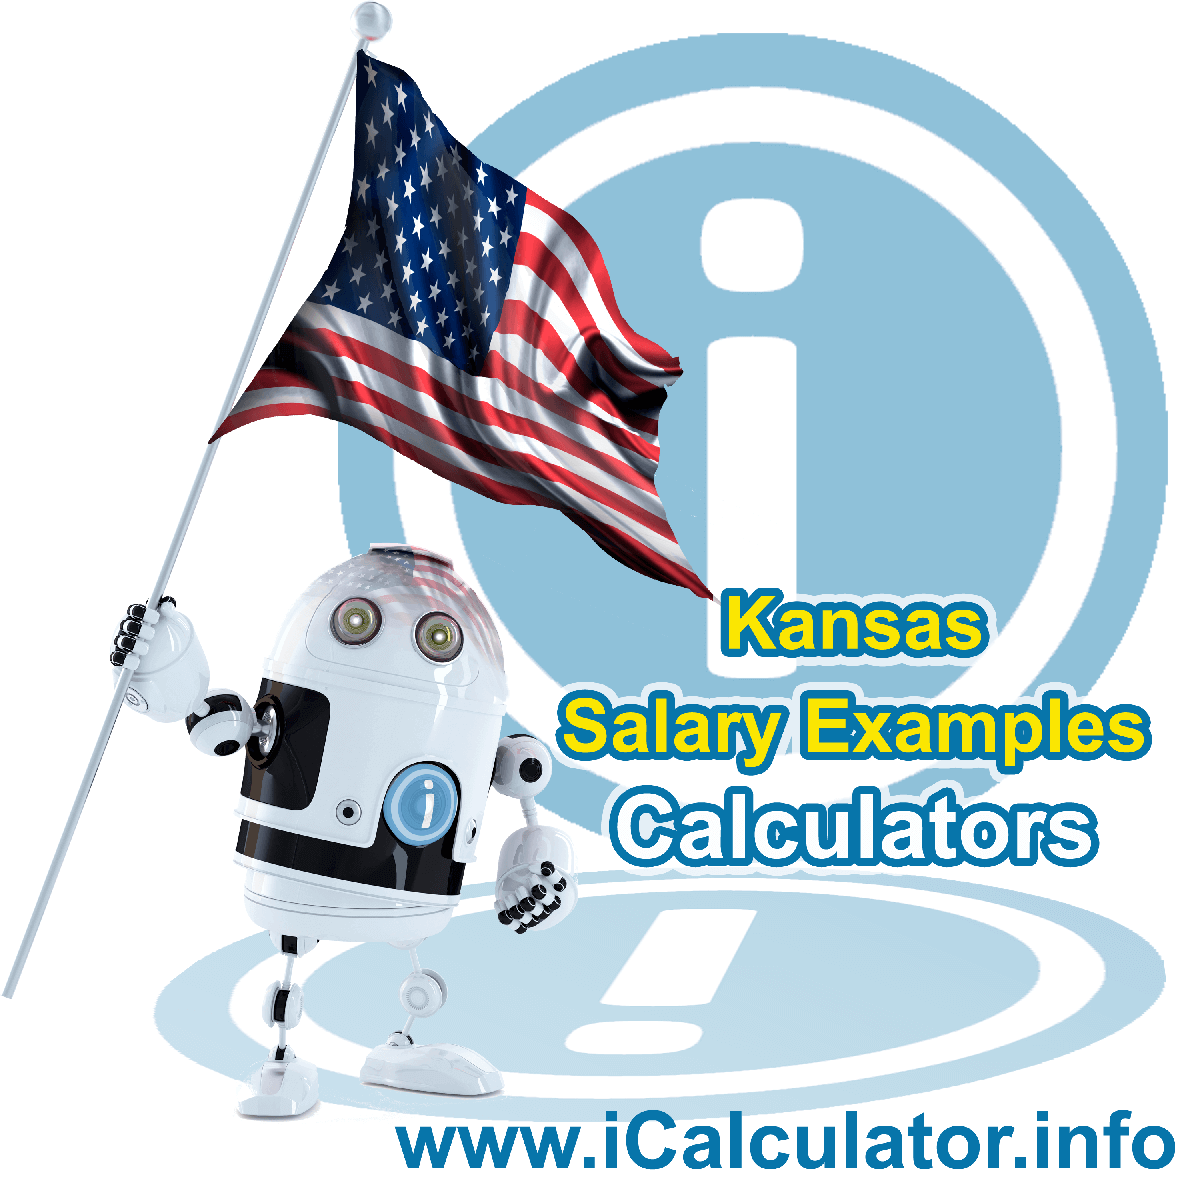 Kansas Salary Example for $100.00 in 2020 | iCalculator | $100.00 salary example for employee and employer paying Kansas State tincome taxes. Detailed salary after tax calculation including Kansas State Tax, Federal State Tax, Medicare Deductions, Social Security, Capital Gains and other income tax and salary deductions complete with supporting Kansas state tax tables